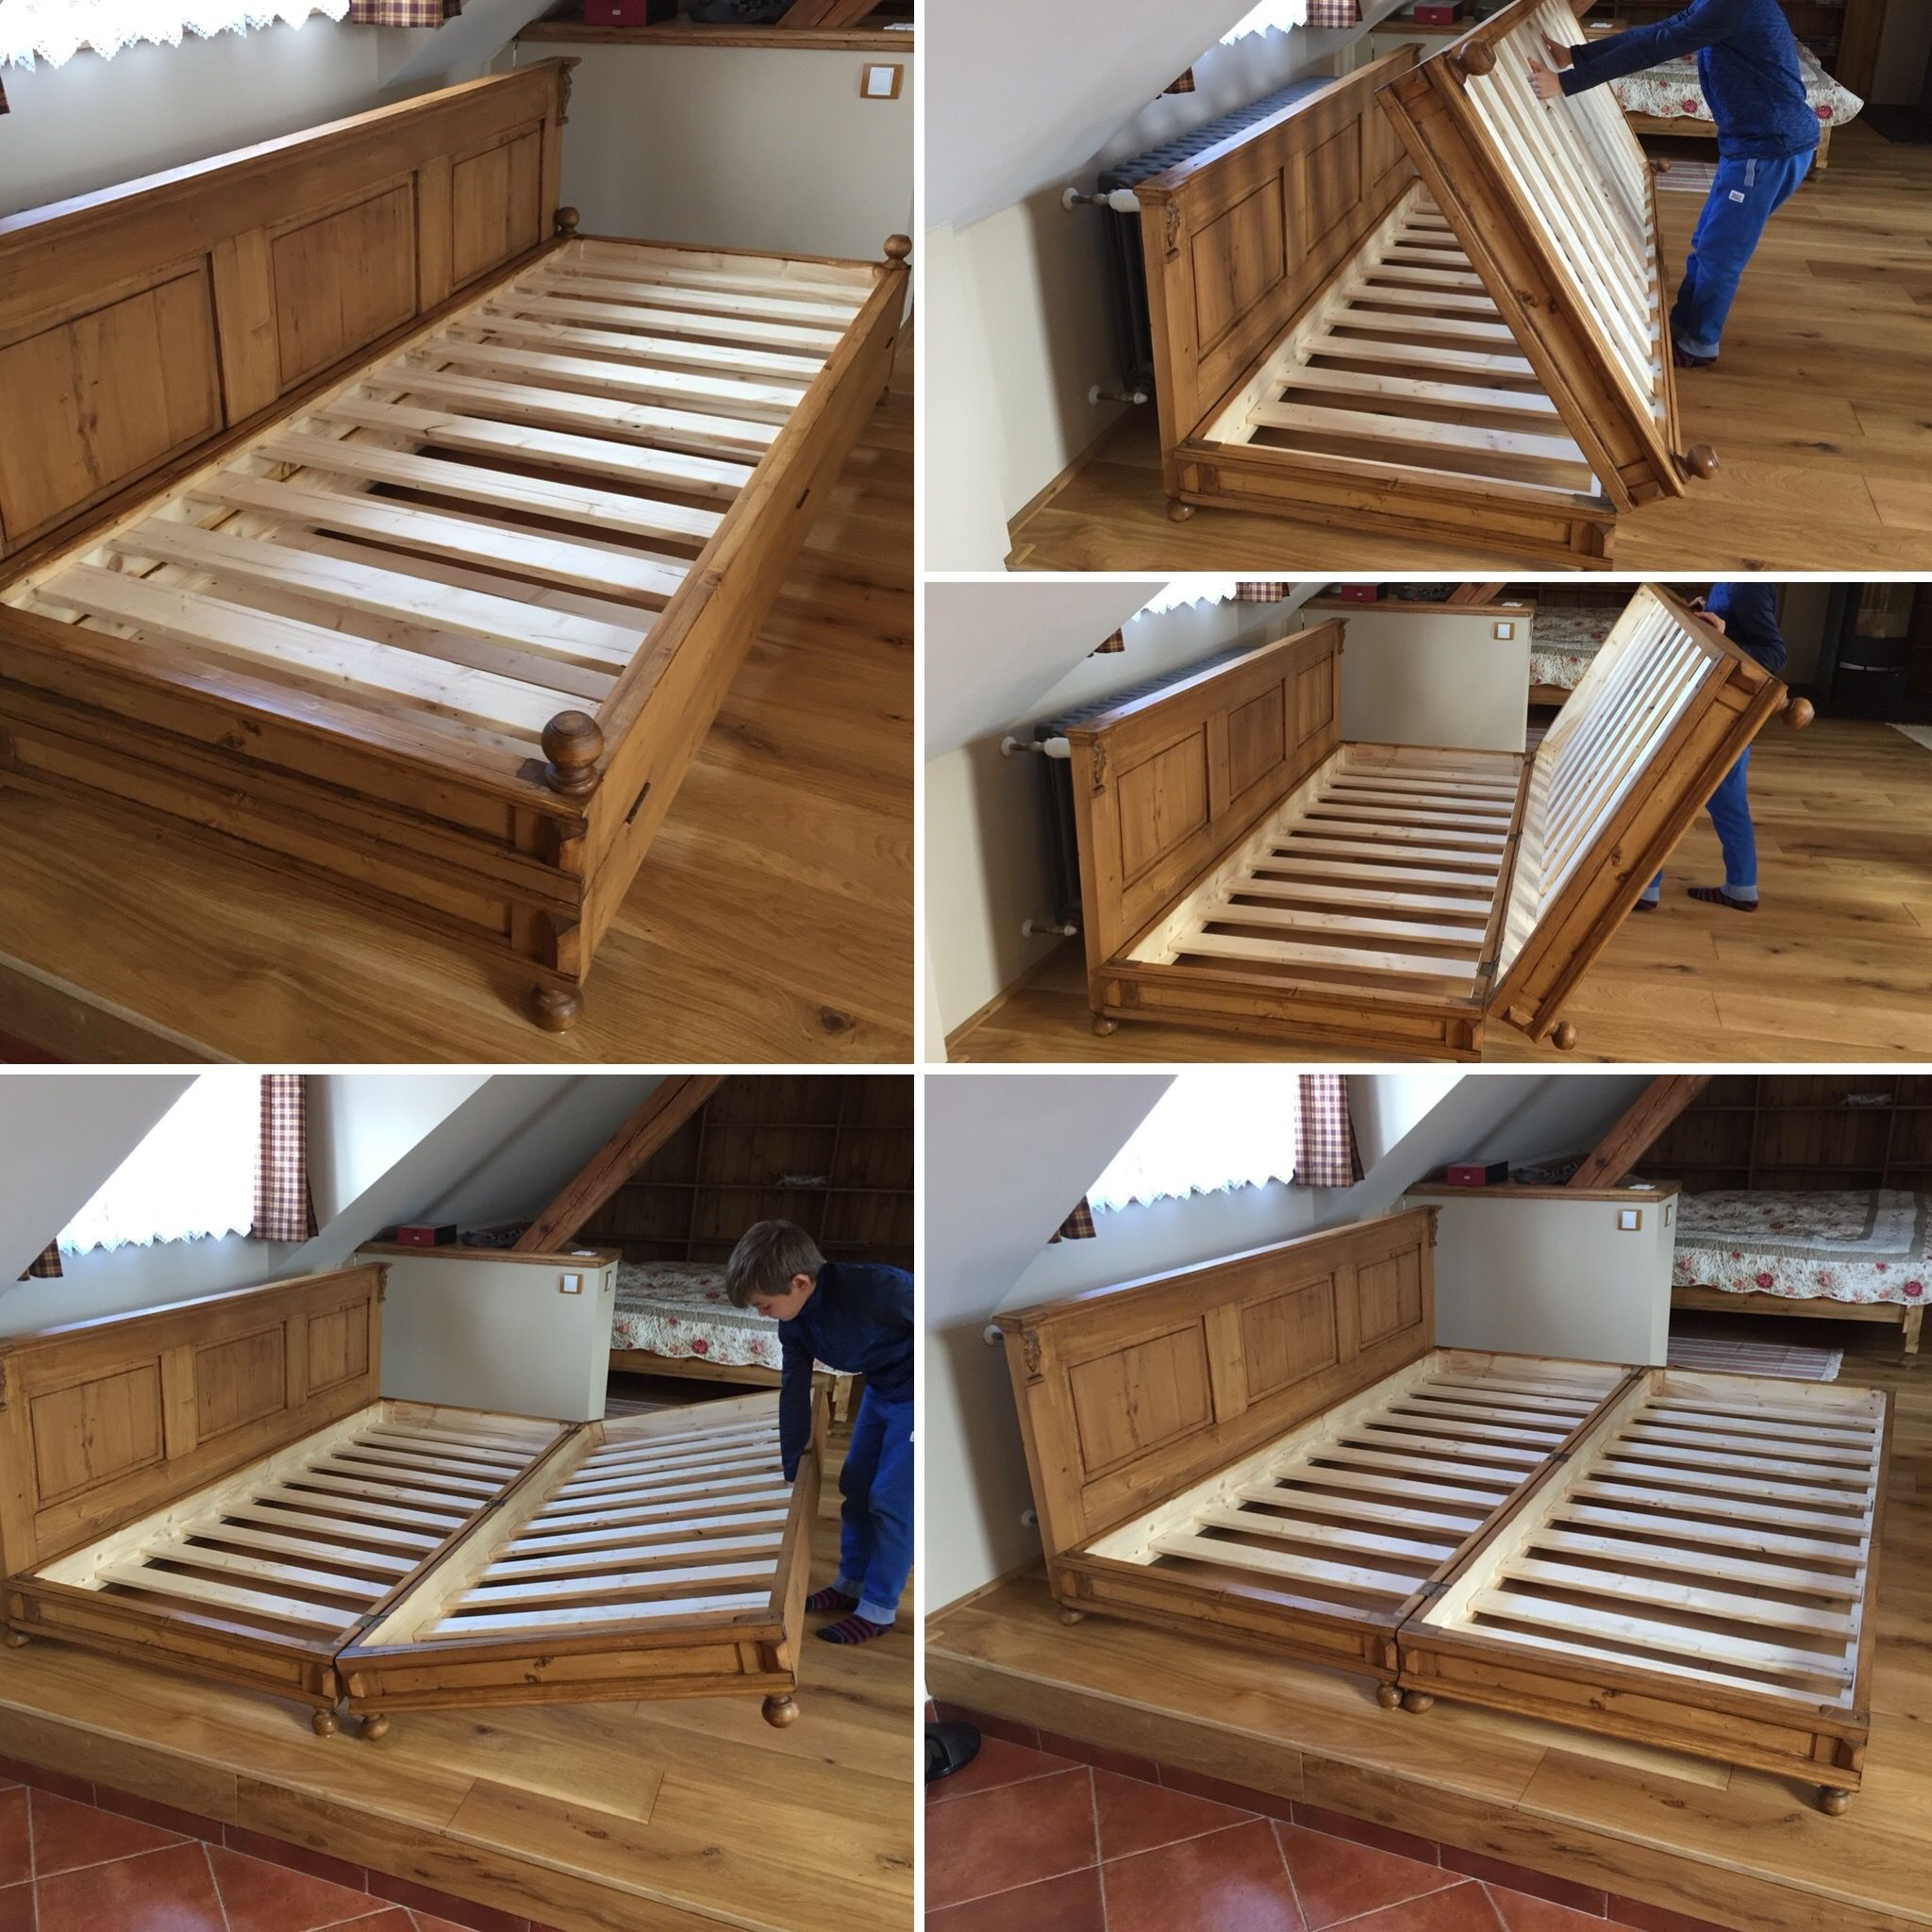 village style folding double bed  Special beds design